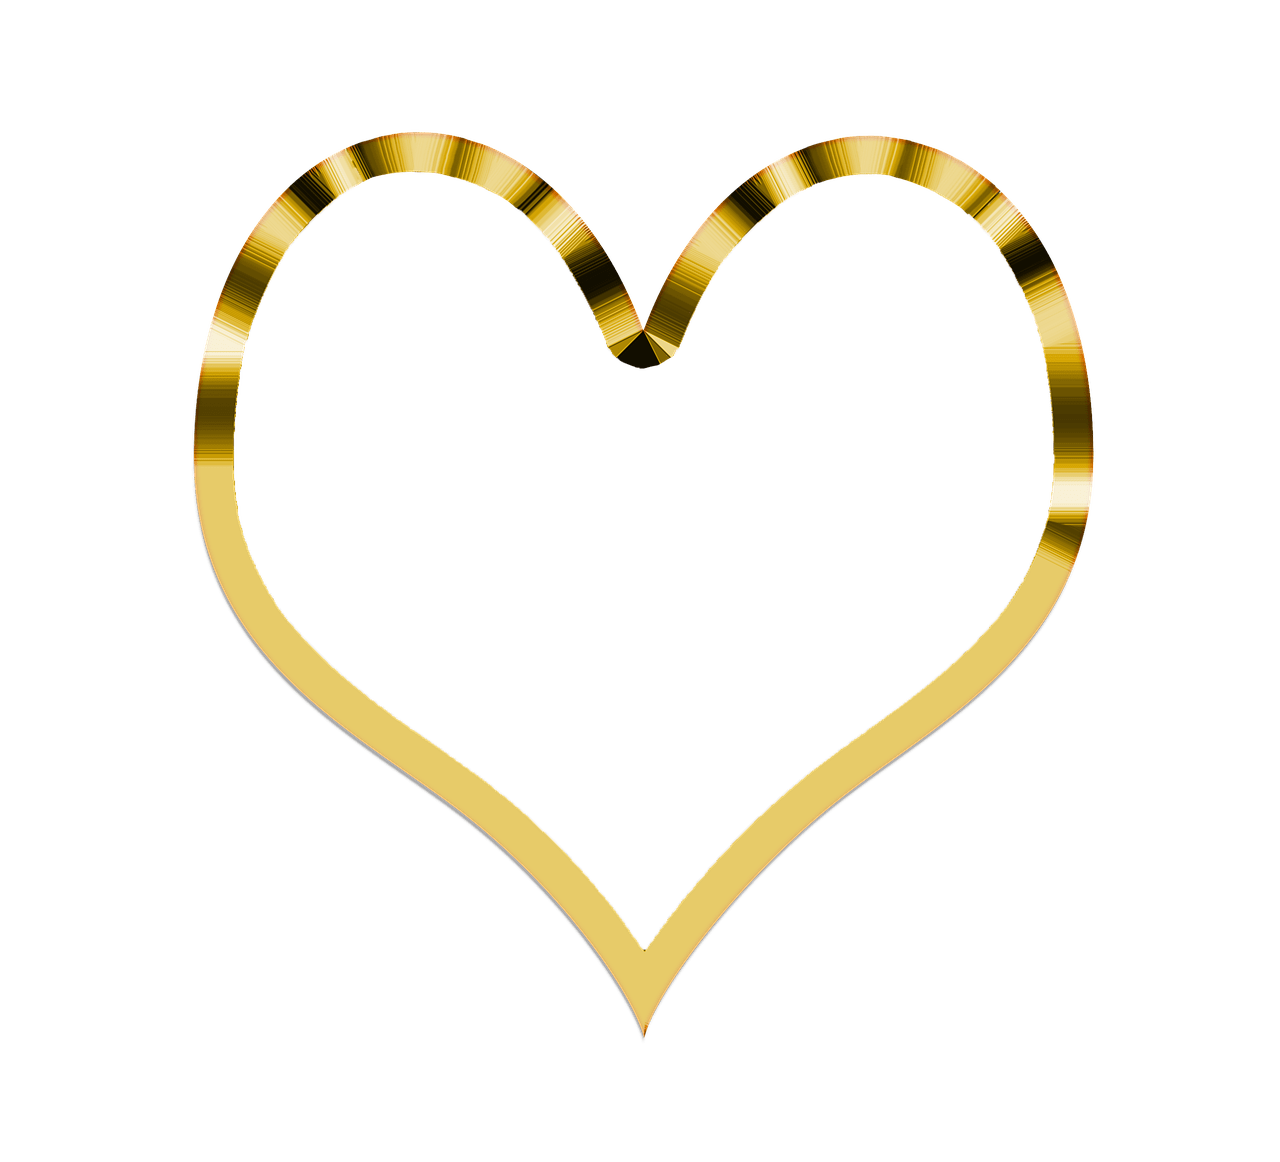 Simple golden transparent png. Lock clipart heart shaped lock